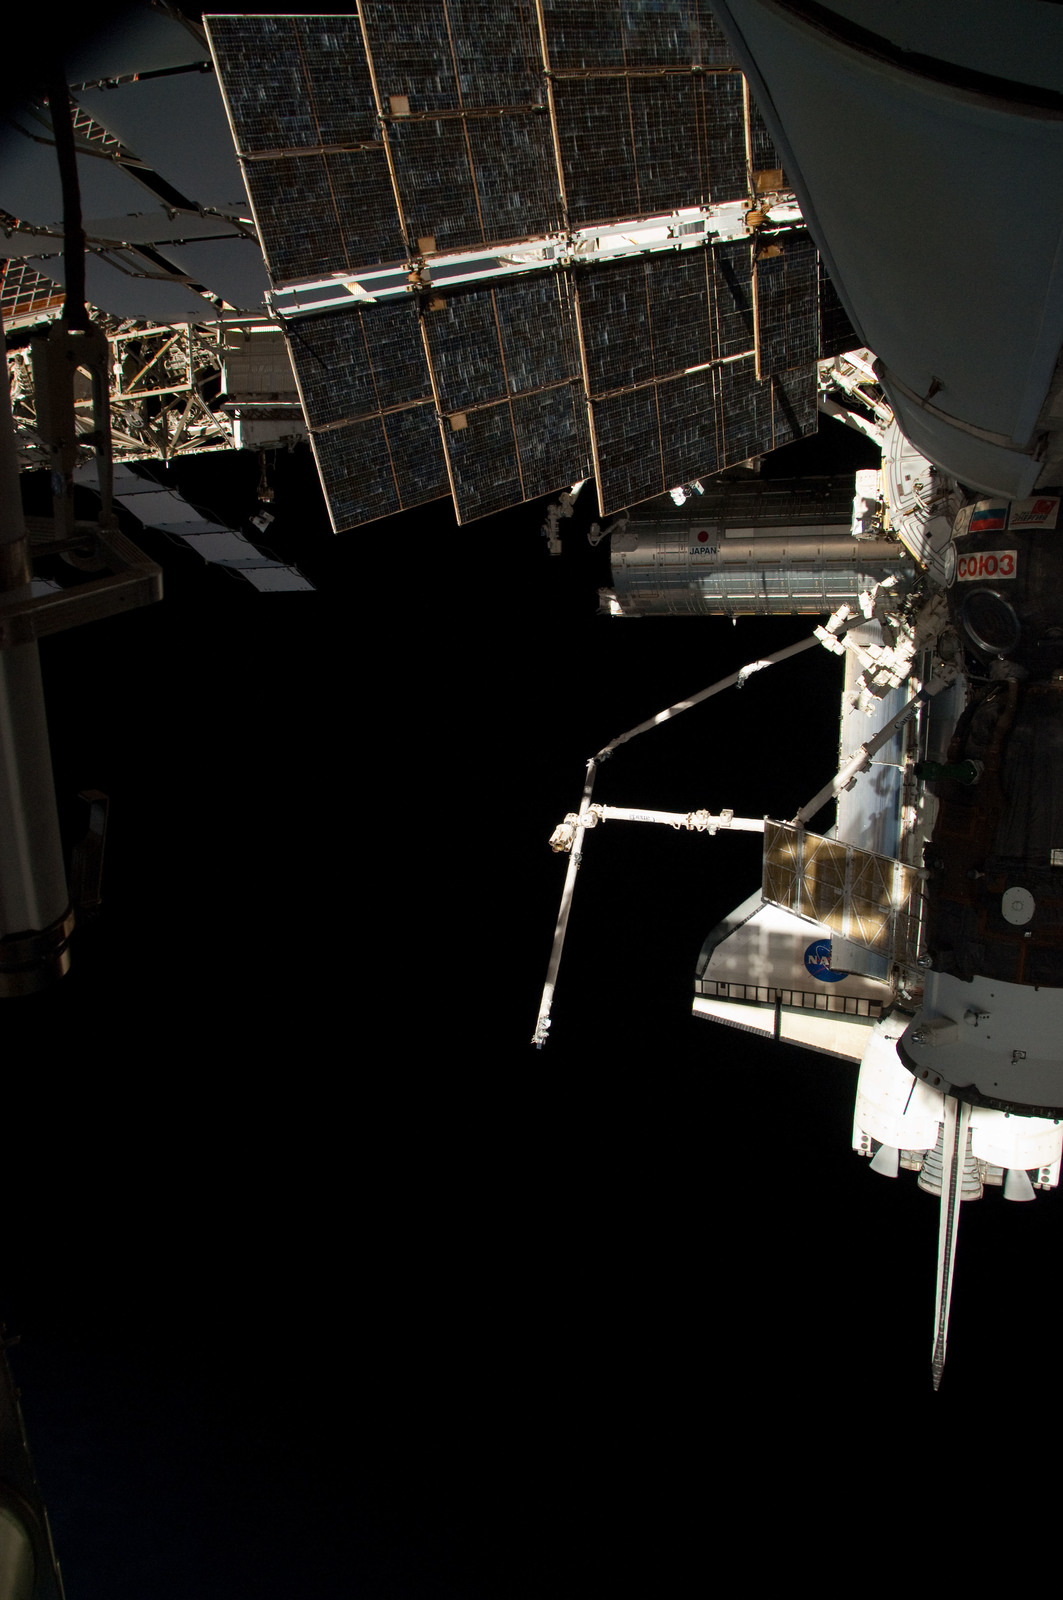 S126E025043 - STS-126 - View of ISS, Docked Soyuz and Endeavour